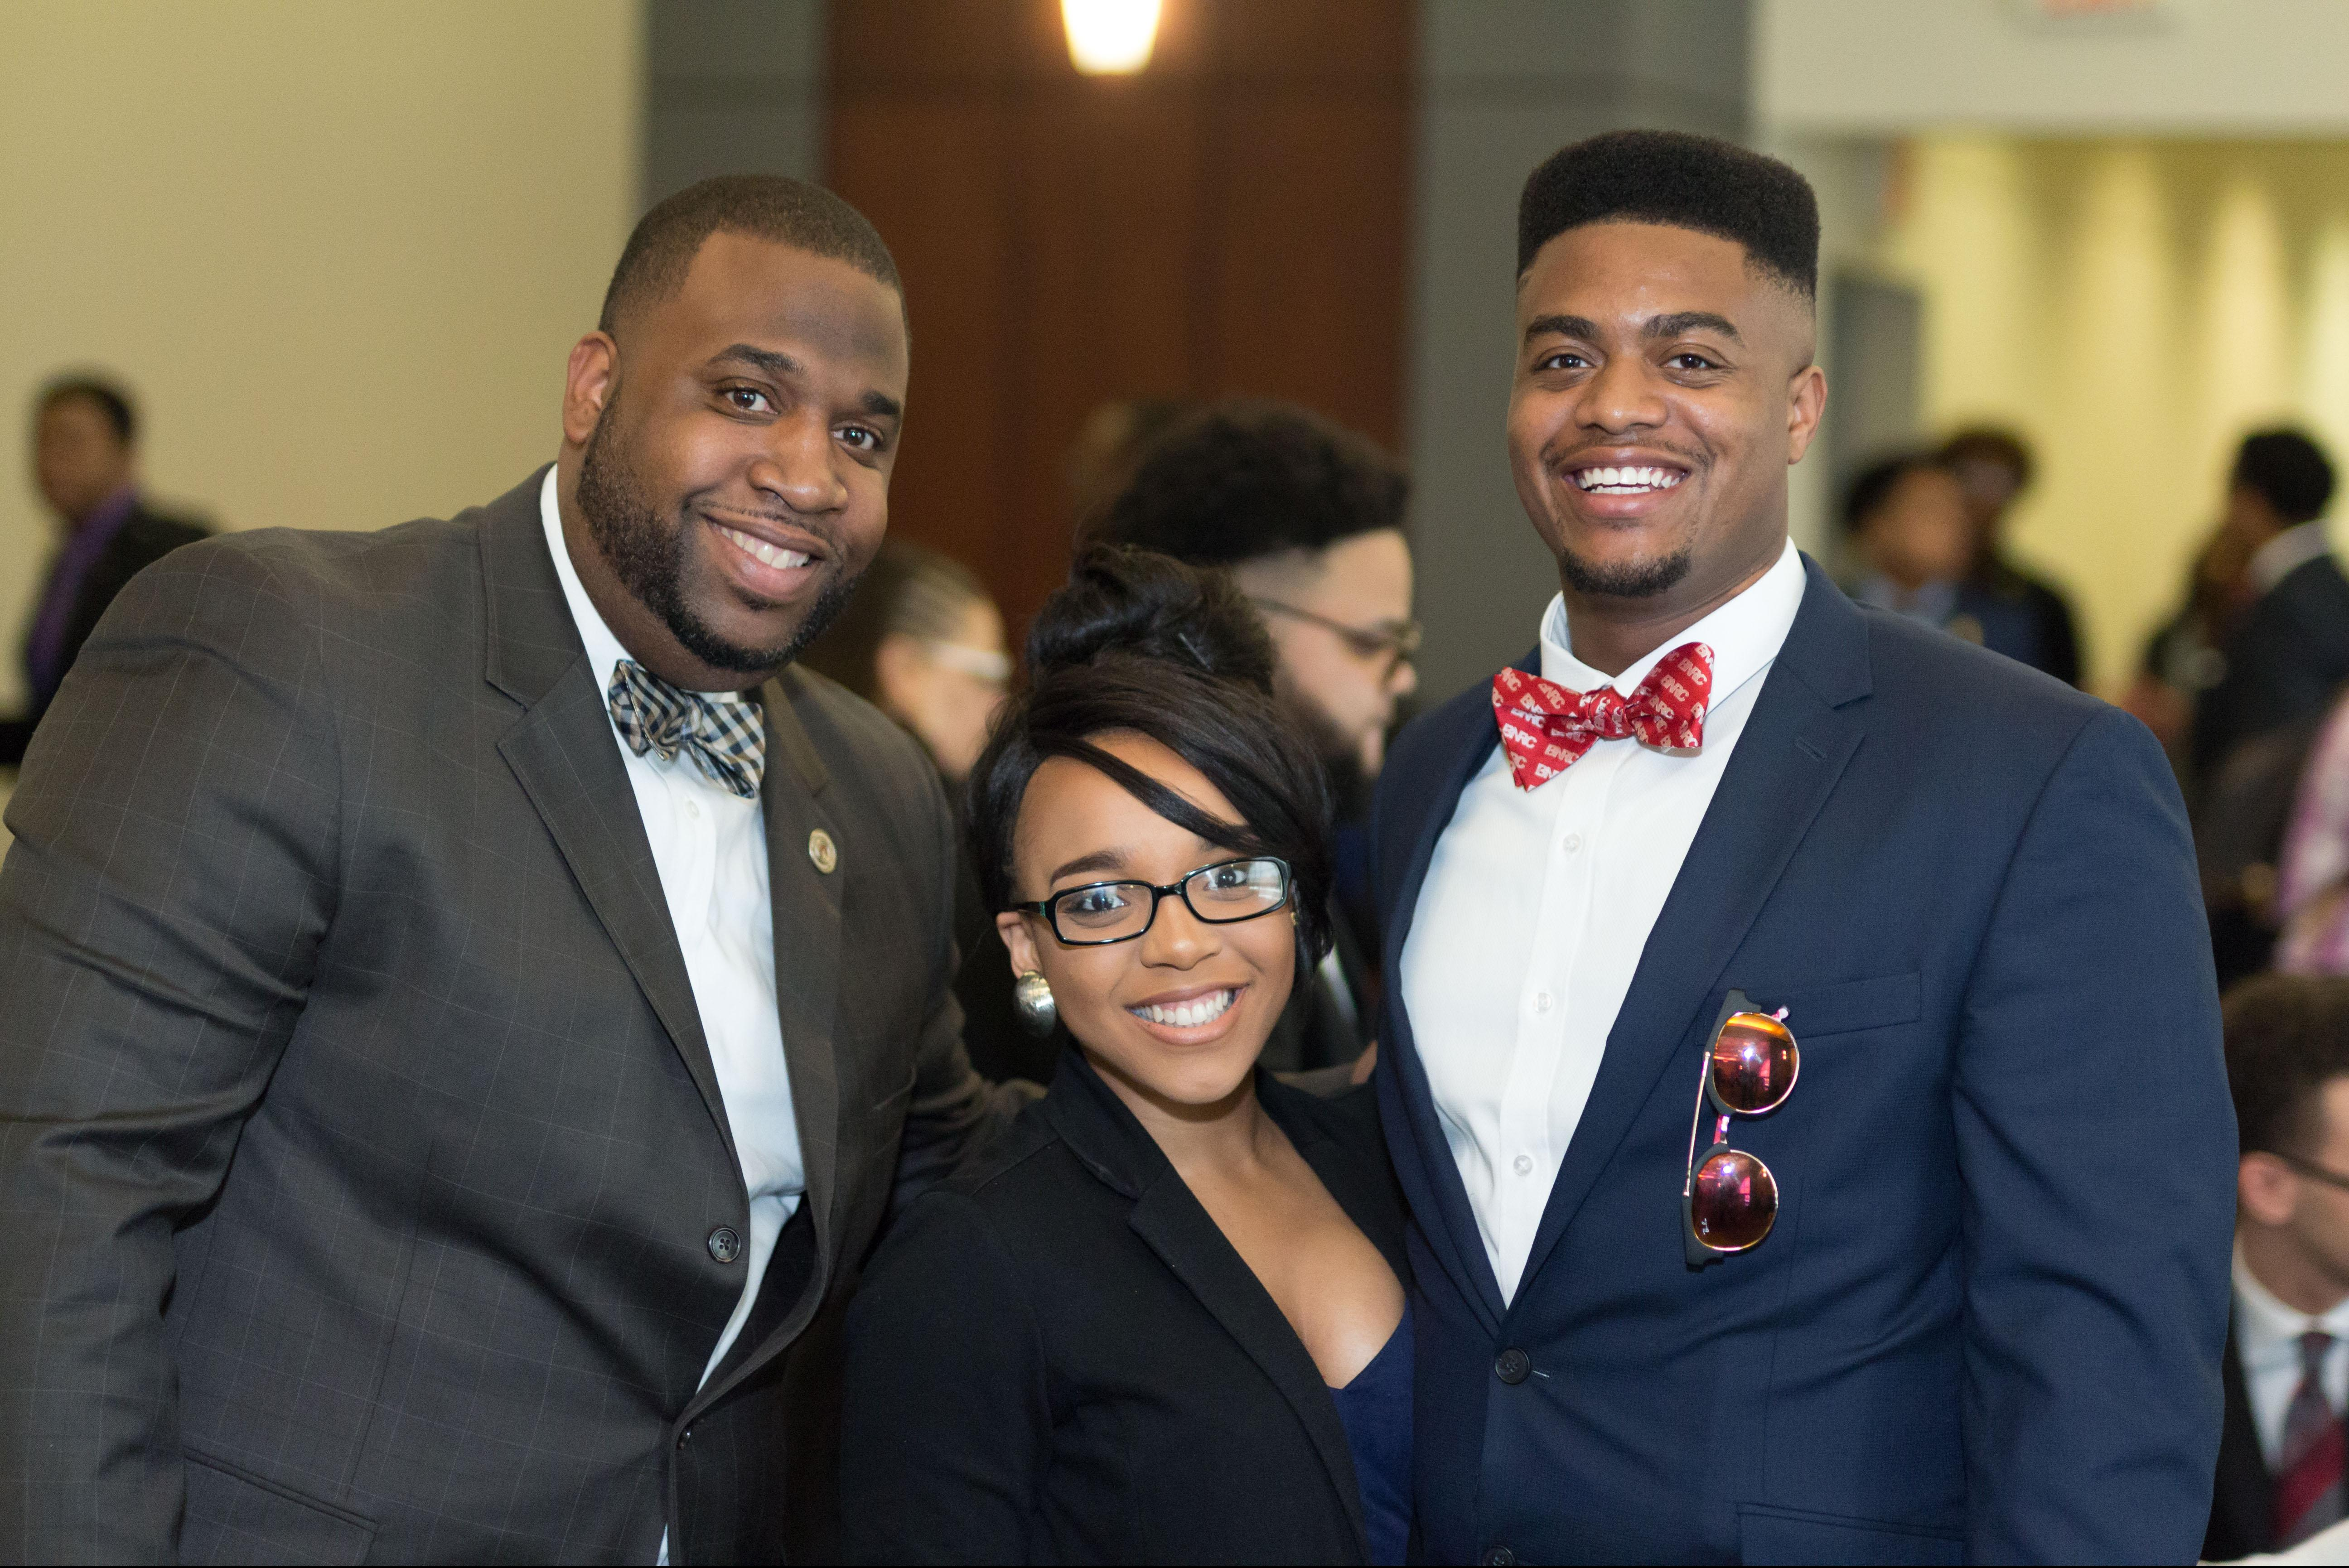 Two Black men and one Black woman smiling at the camera